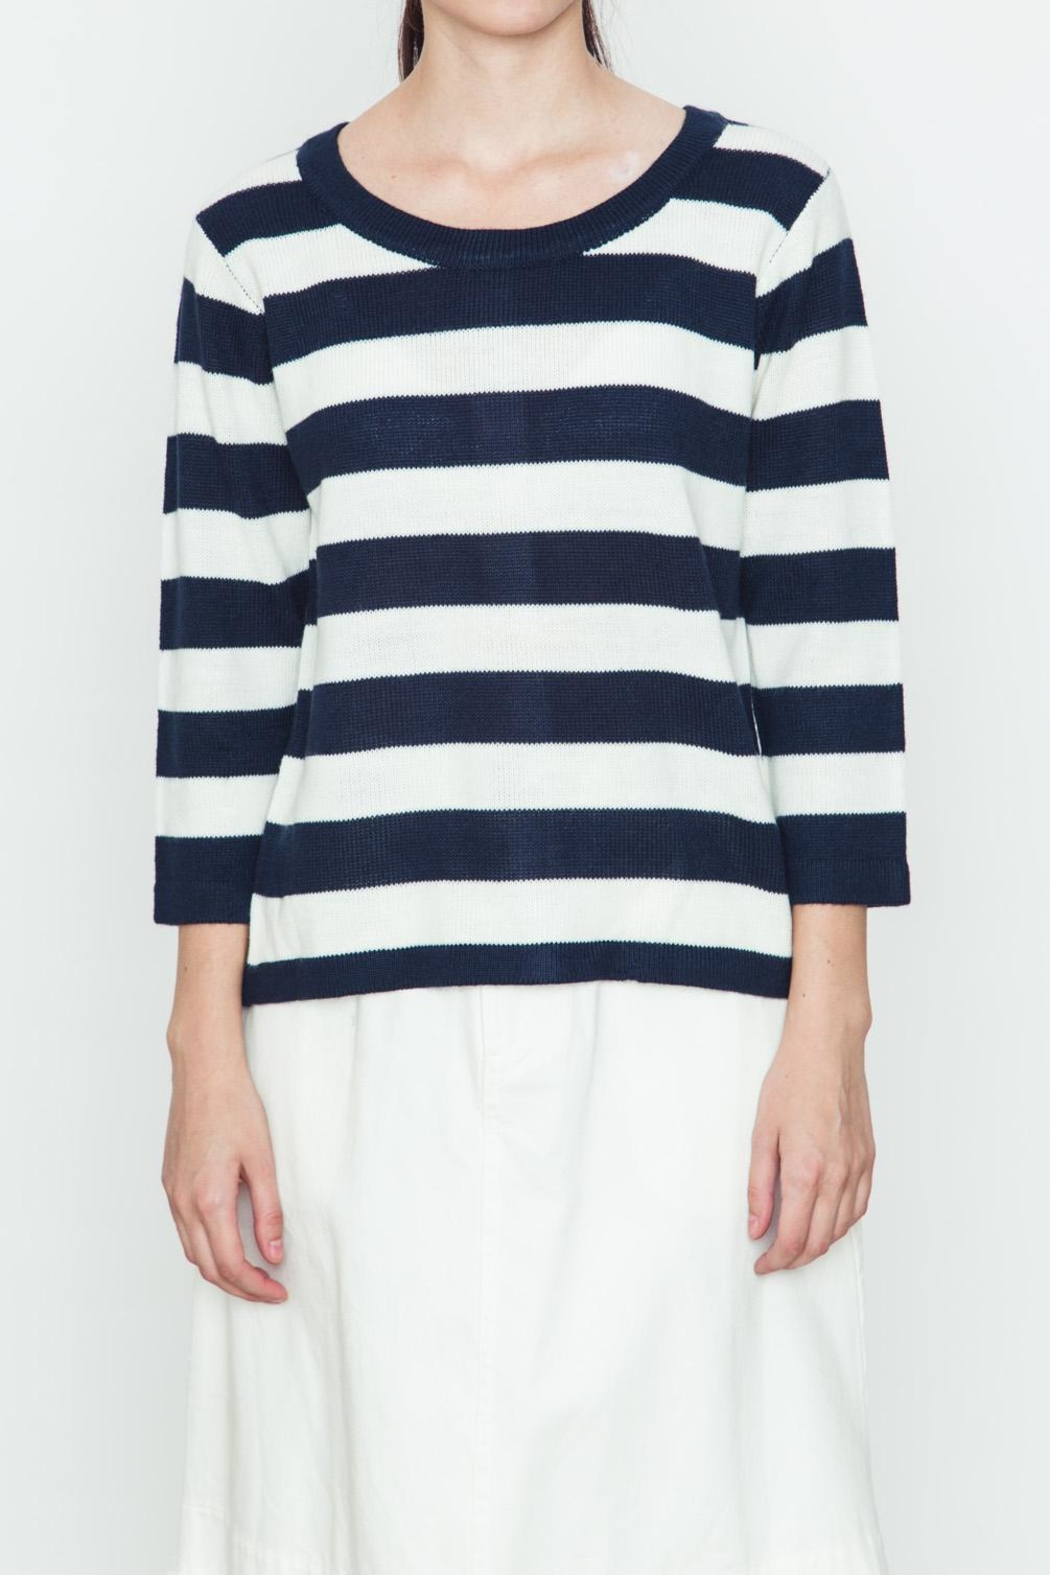 Movint Back Buttoned Striped Sweater - Main Image